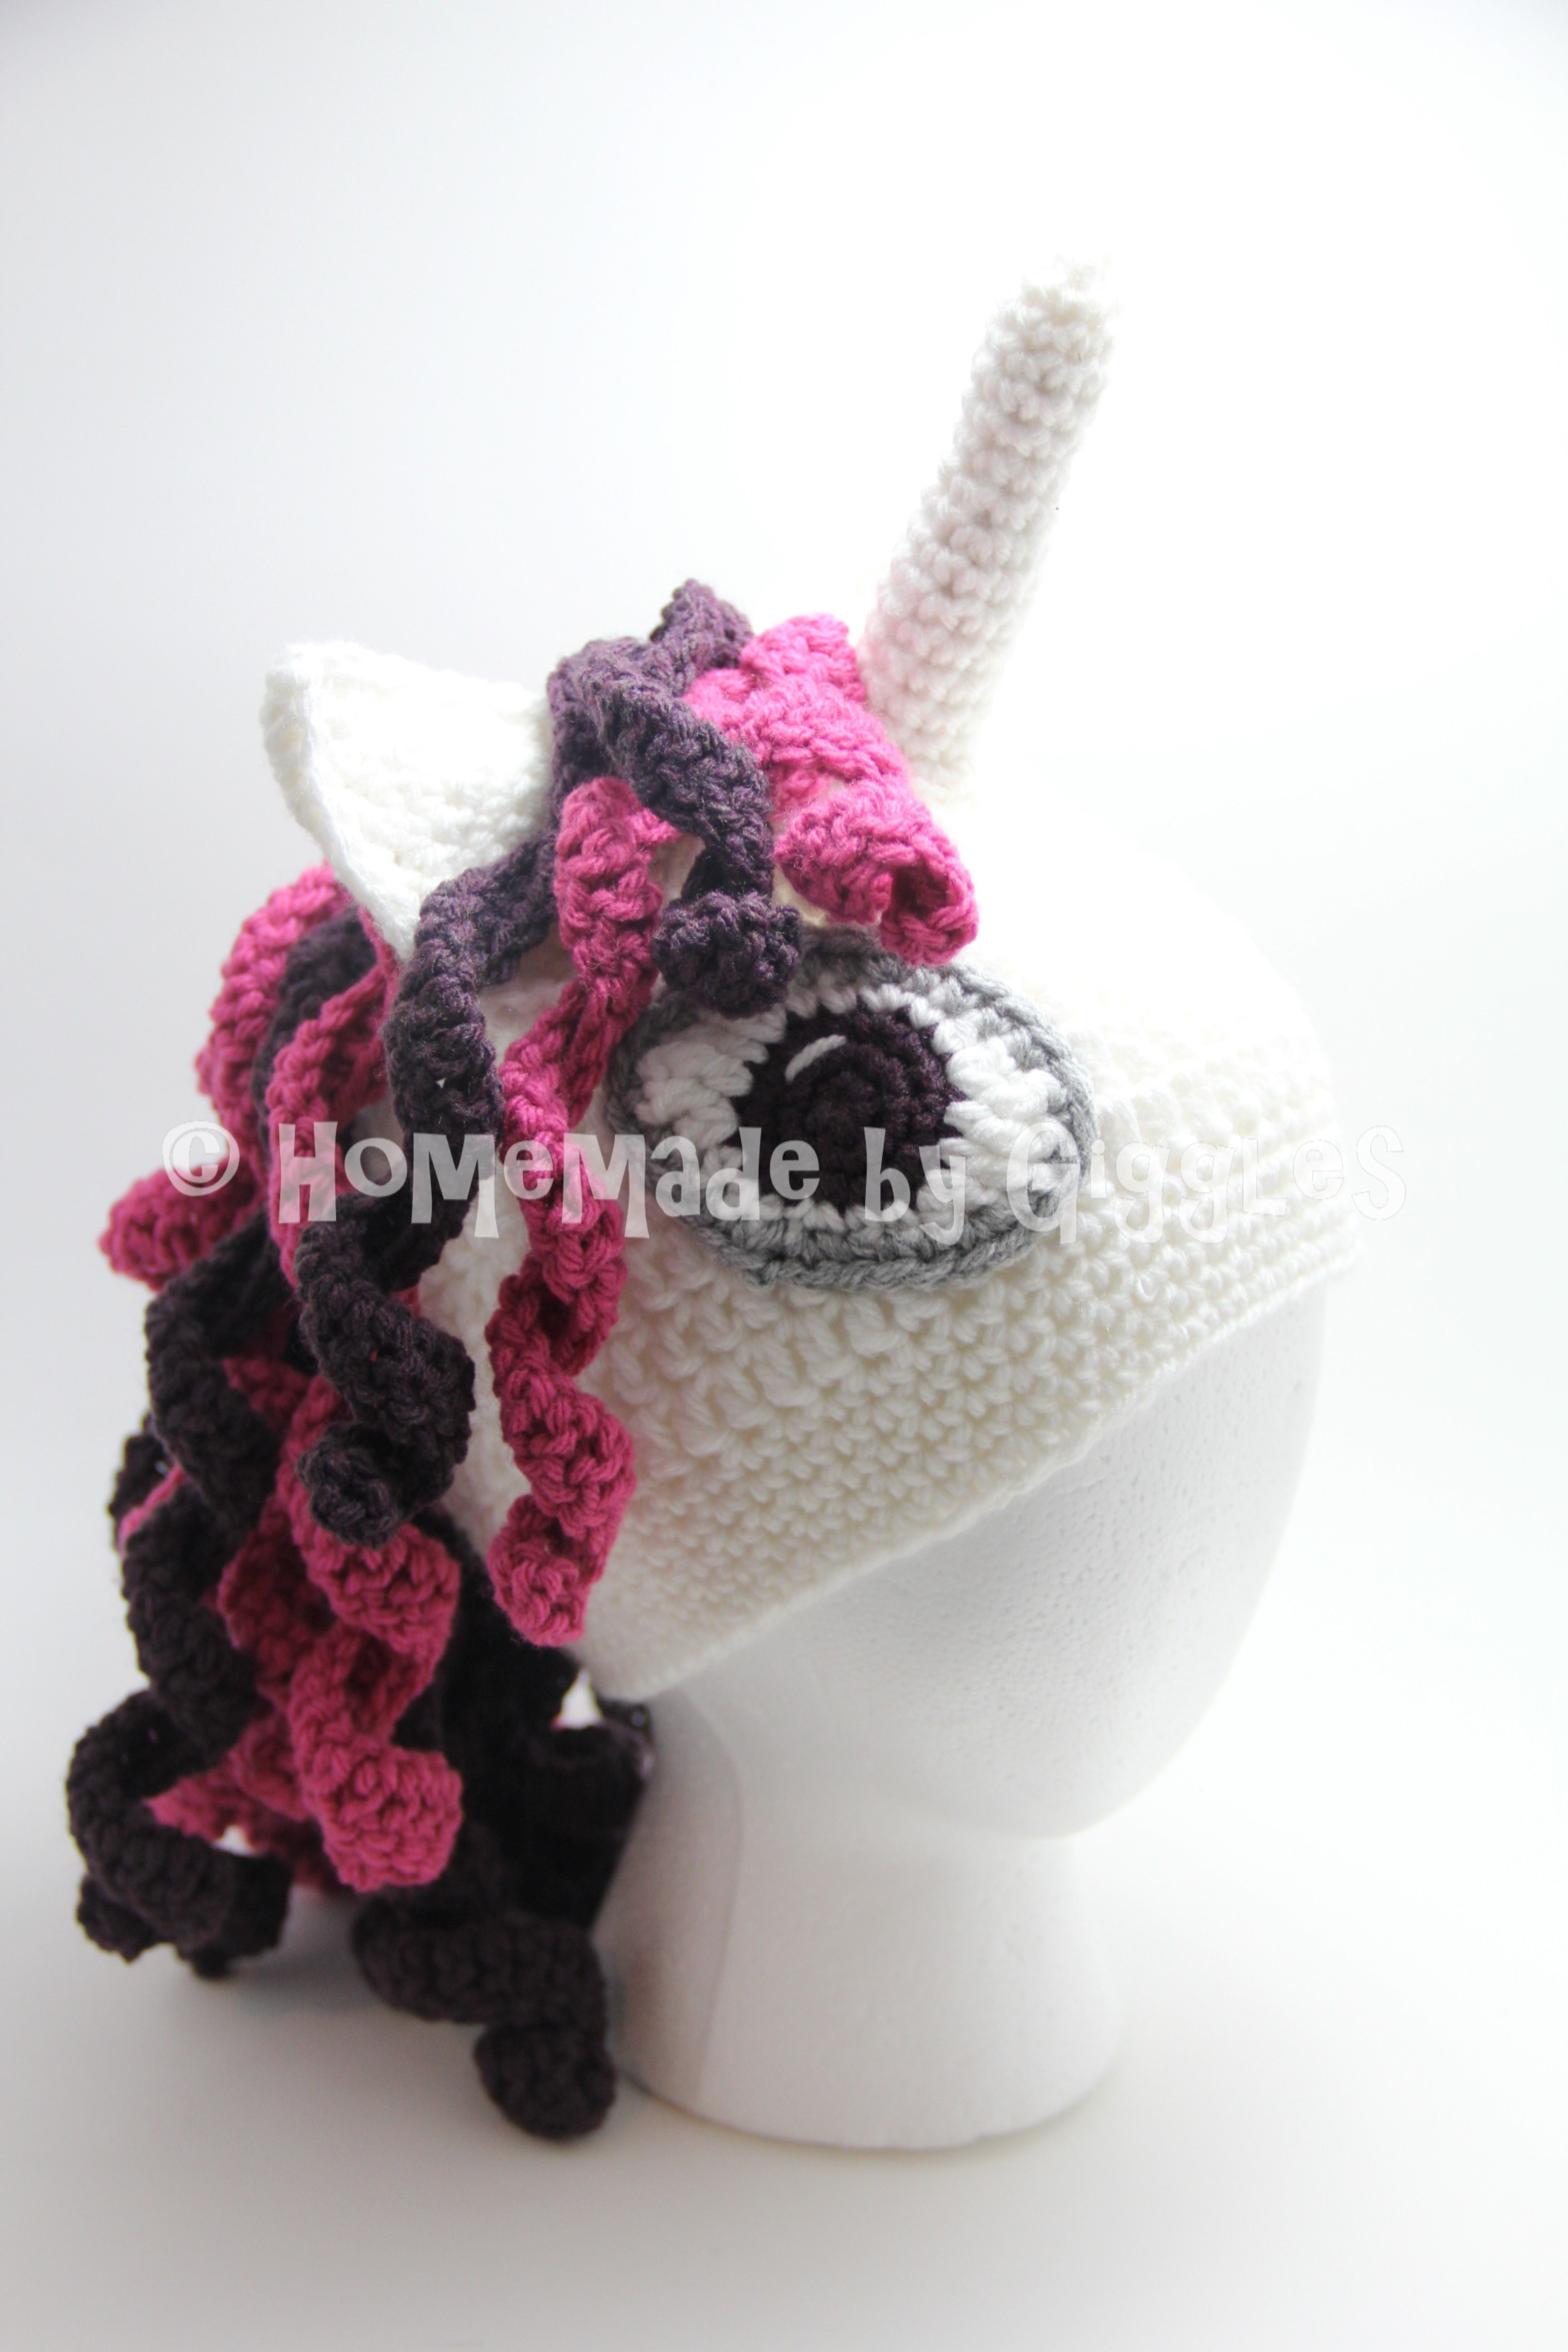 Free pattern for this crochet unicorn hat homemade by giggles